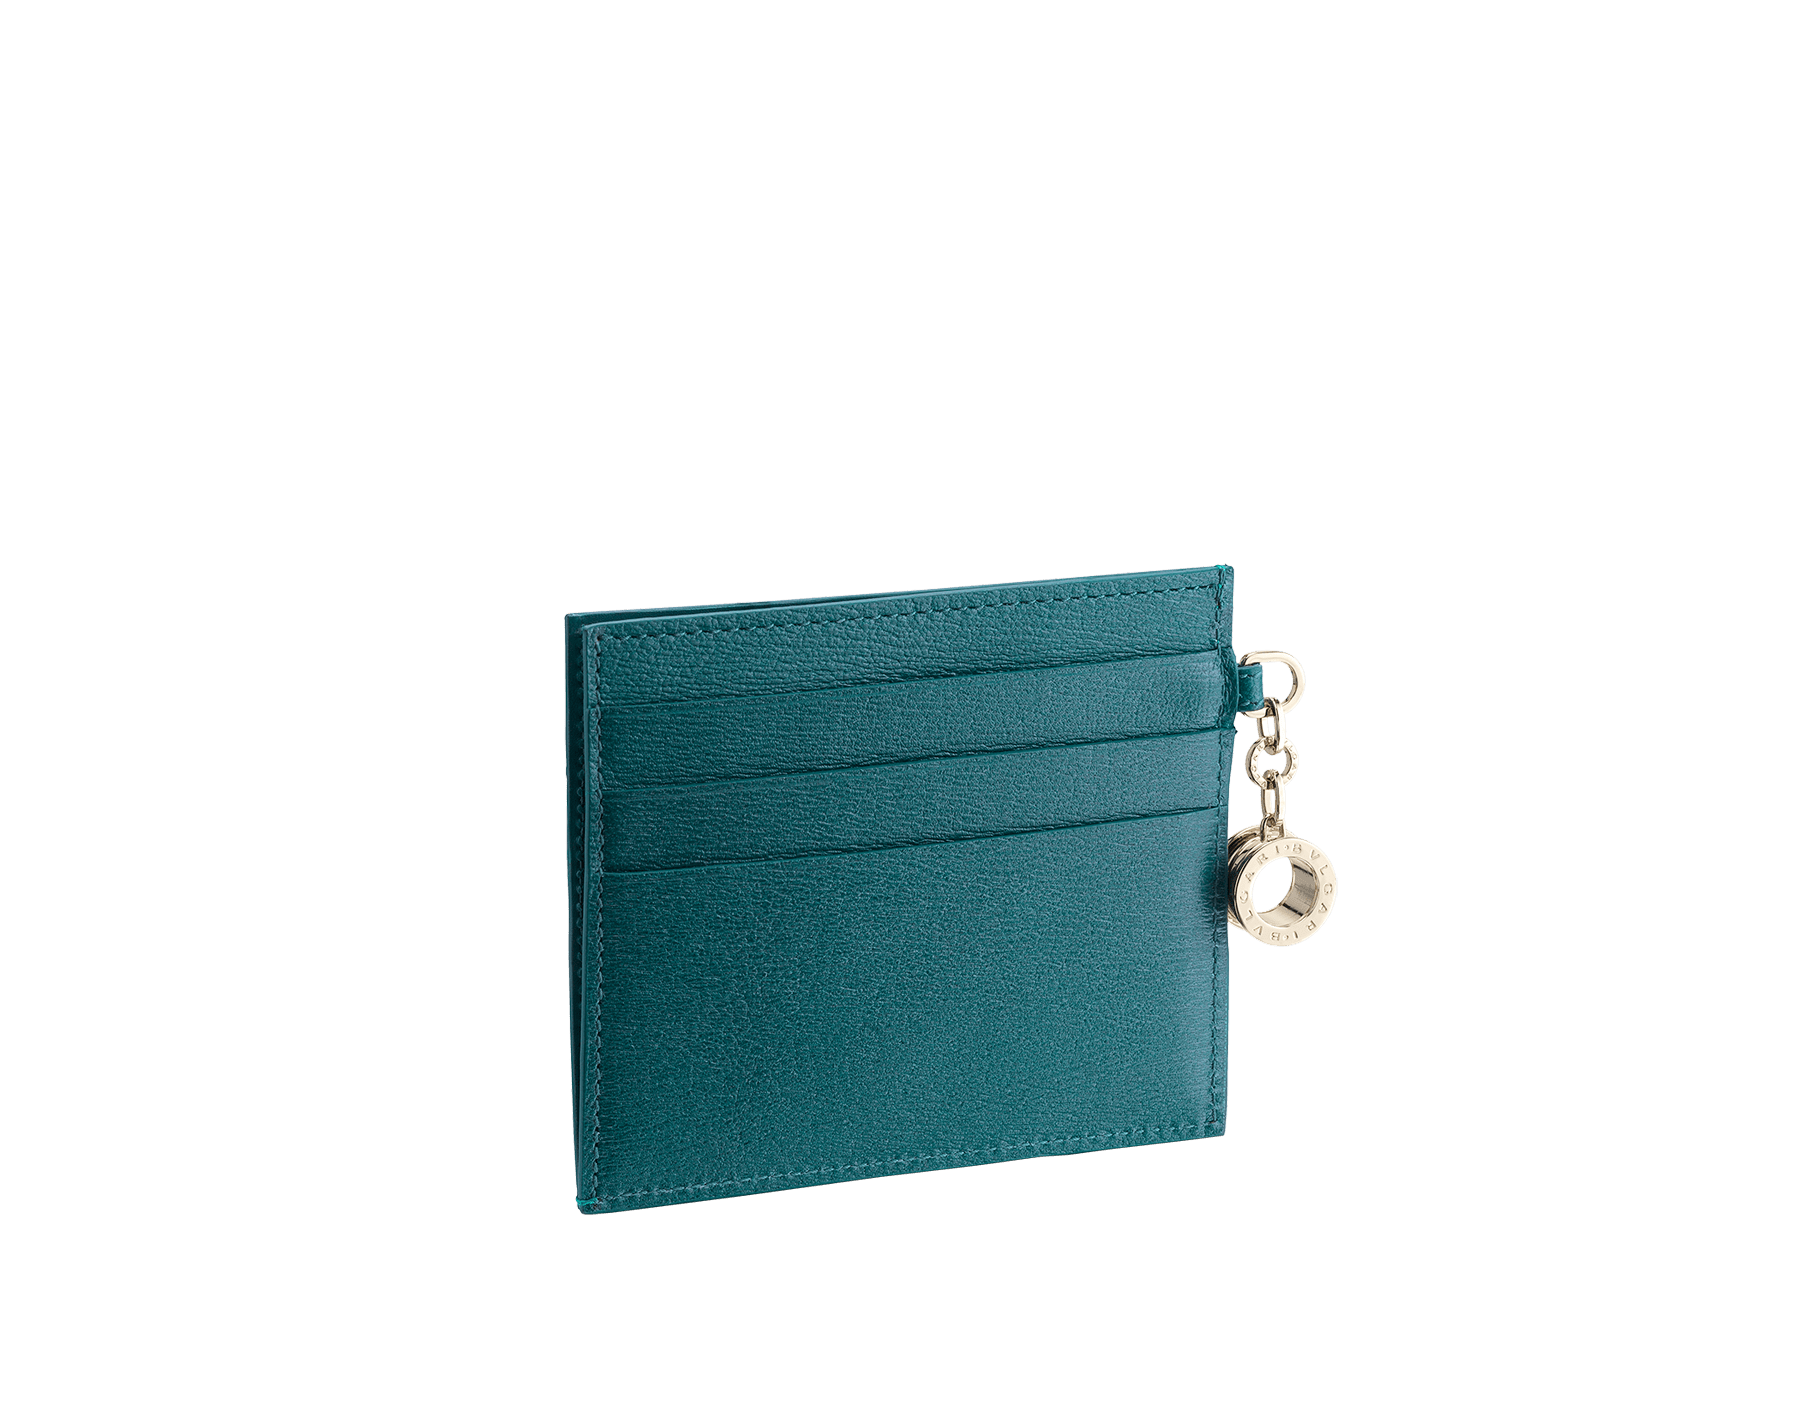 B.zero1 open credit card holder in tropical turquoise and deep jade goatskin. Iconic B.zero1 charm in light gold plated brass. 288234 image 2